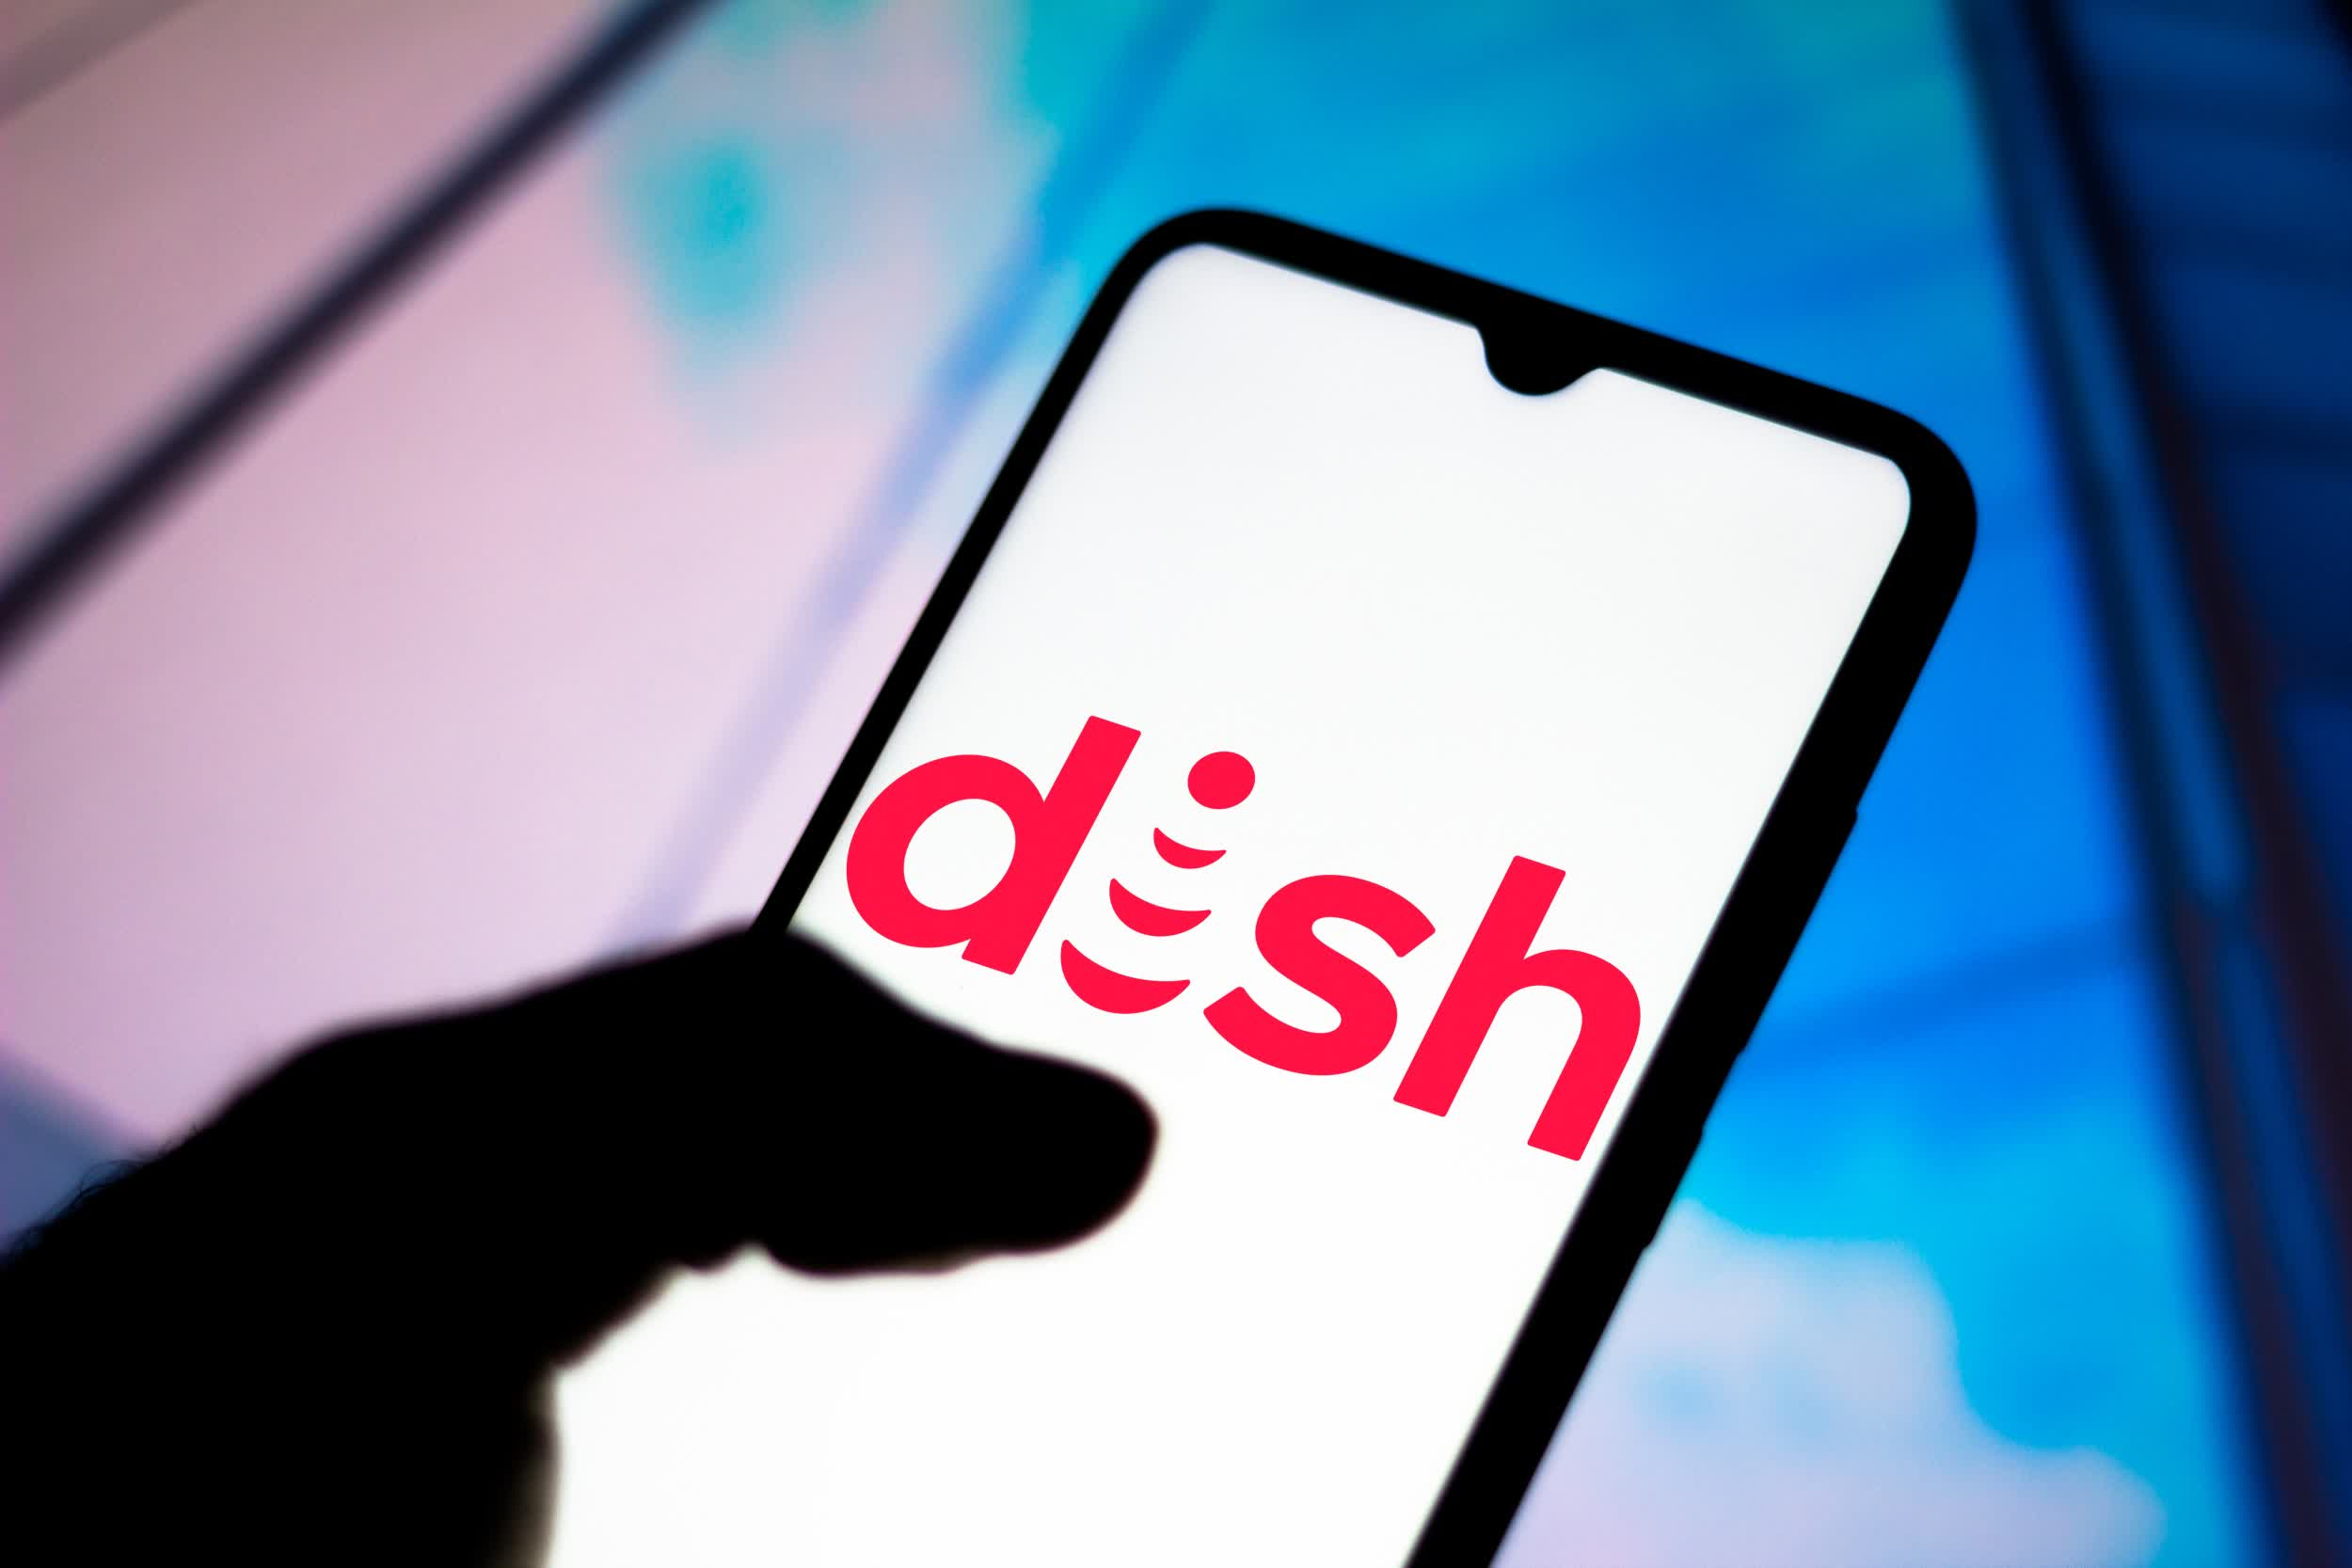 Dish to acquire Republic Wireless and its 200,000 subscribers